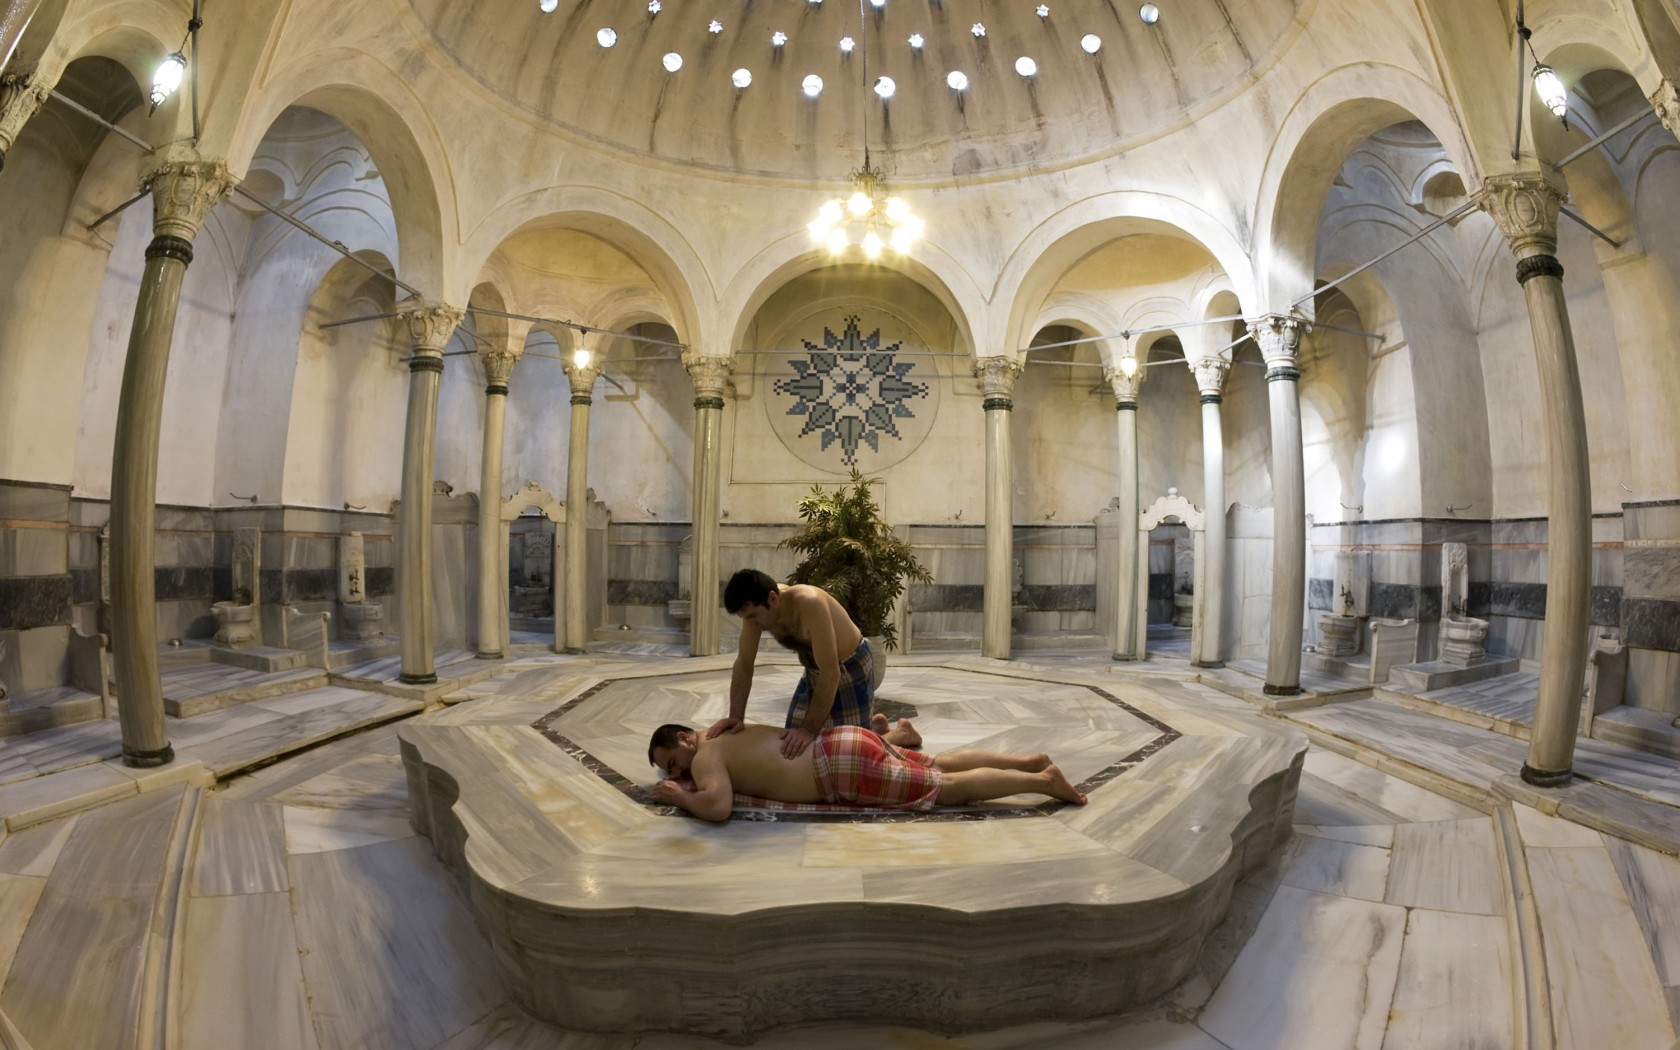 A popular hamam in Istanbul. The perfect relaxing experience for those cold winter days.